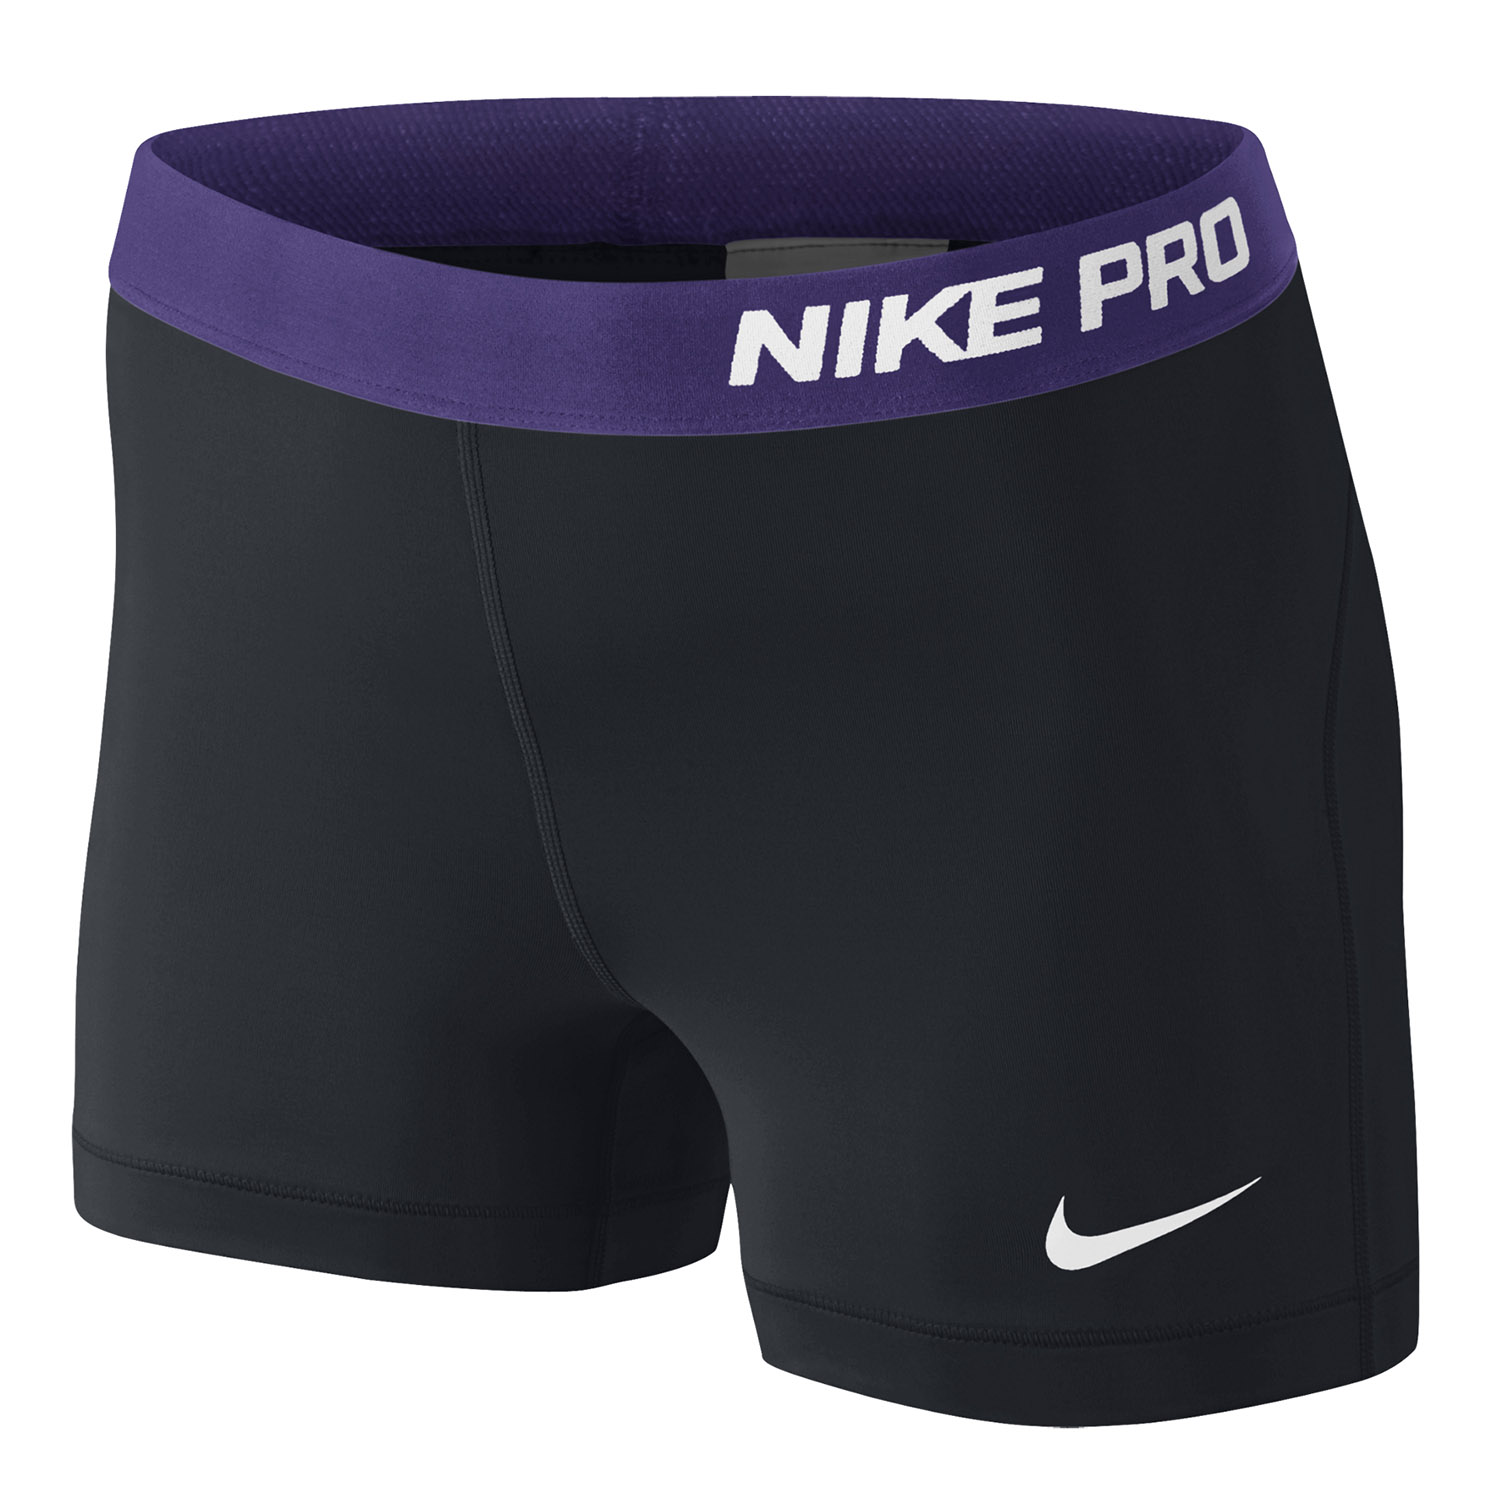 nike womens pro core 3 compresssion shorts. Black Bedroom Furniture Sets. Home Design Ideas